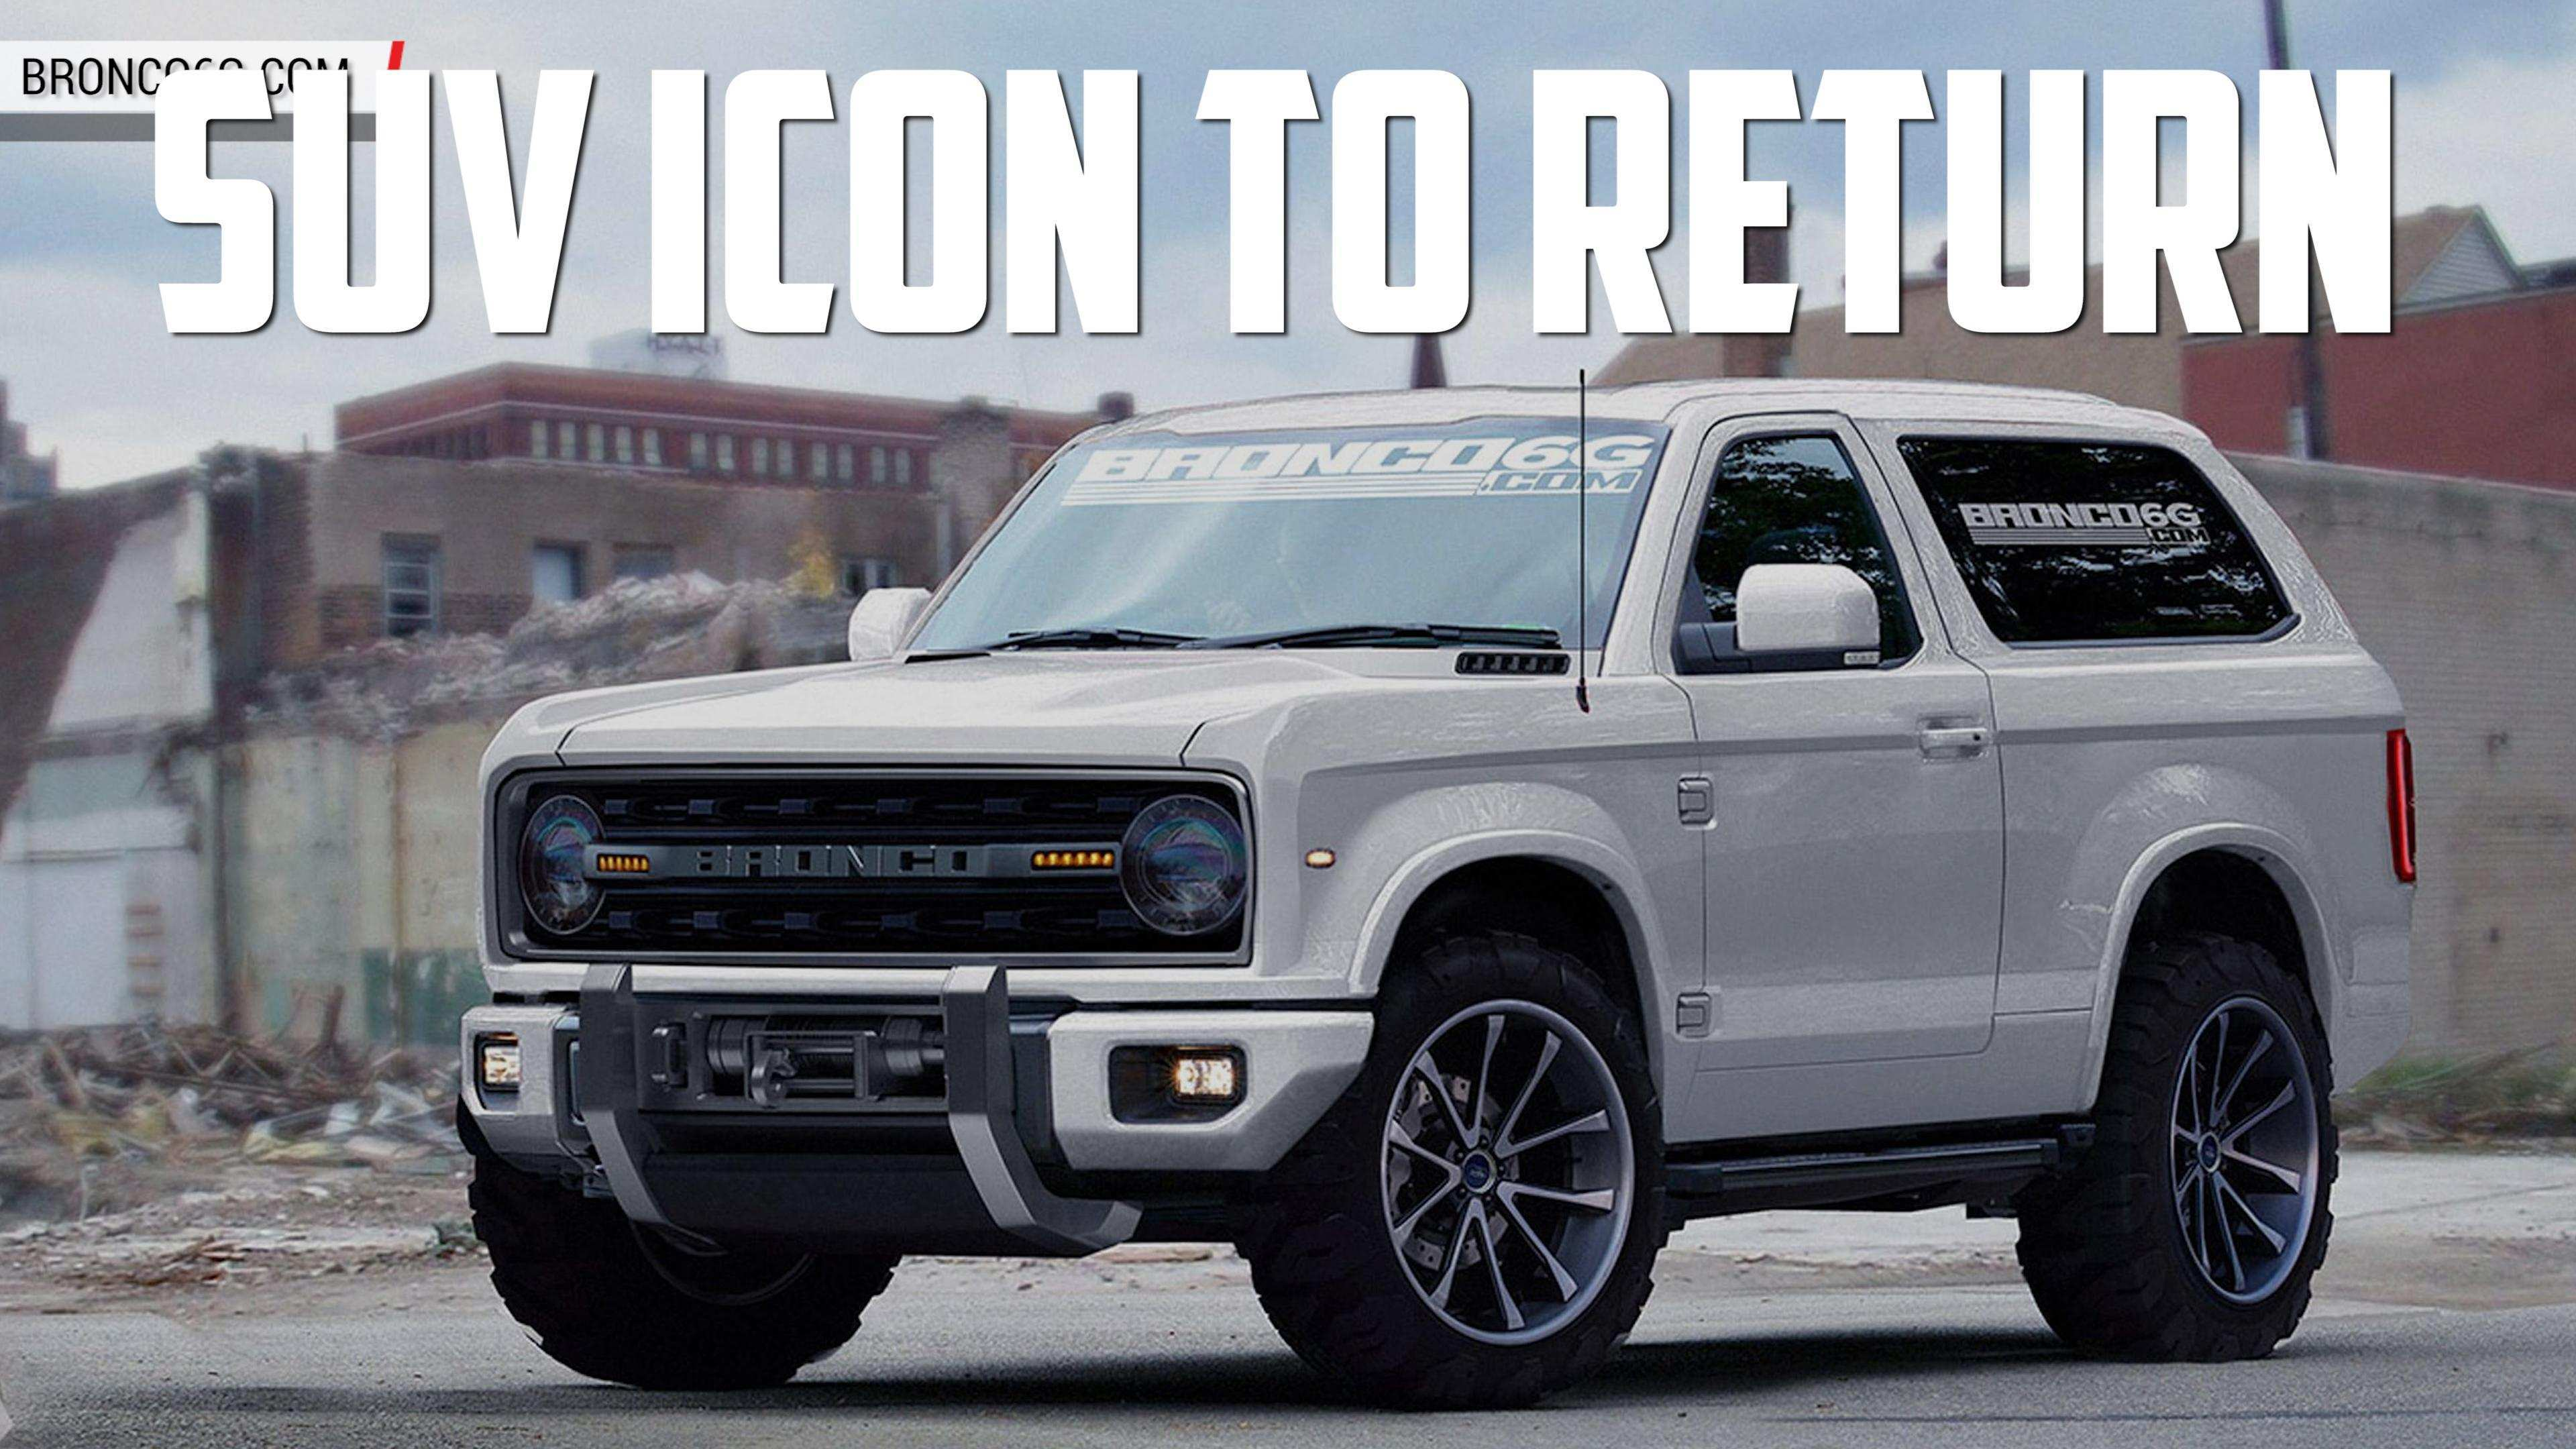 18 New 2020 Ford Bronco Msrp Photos